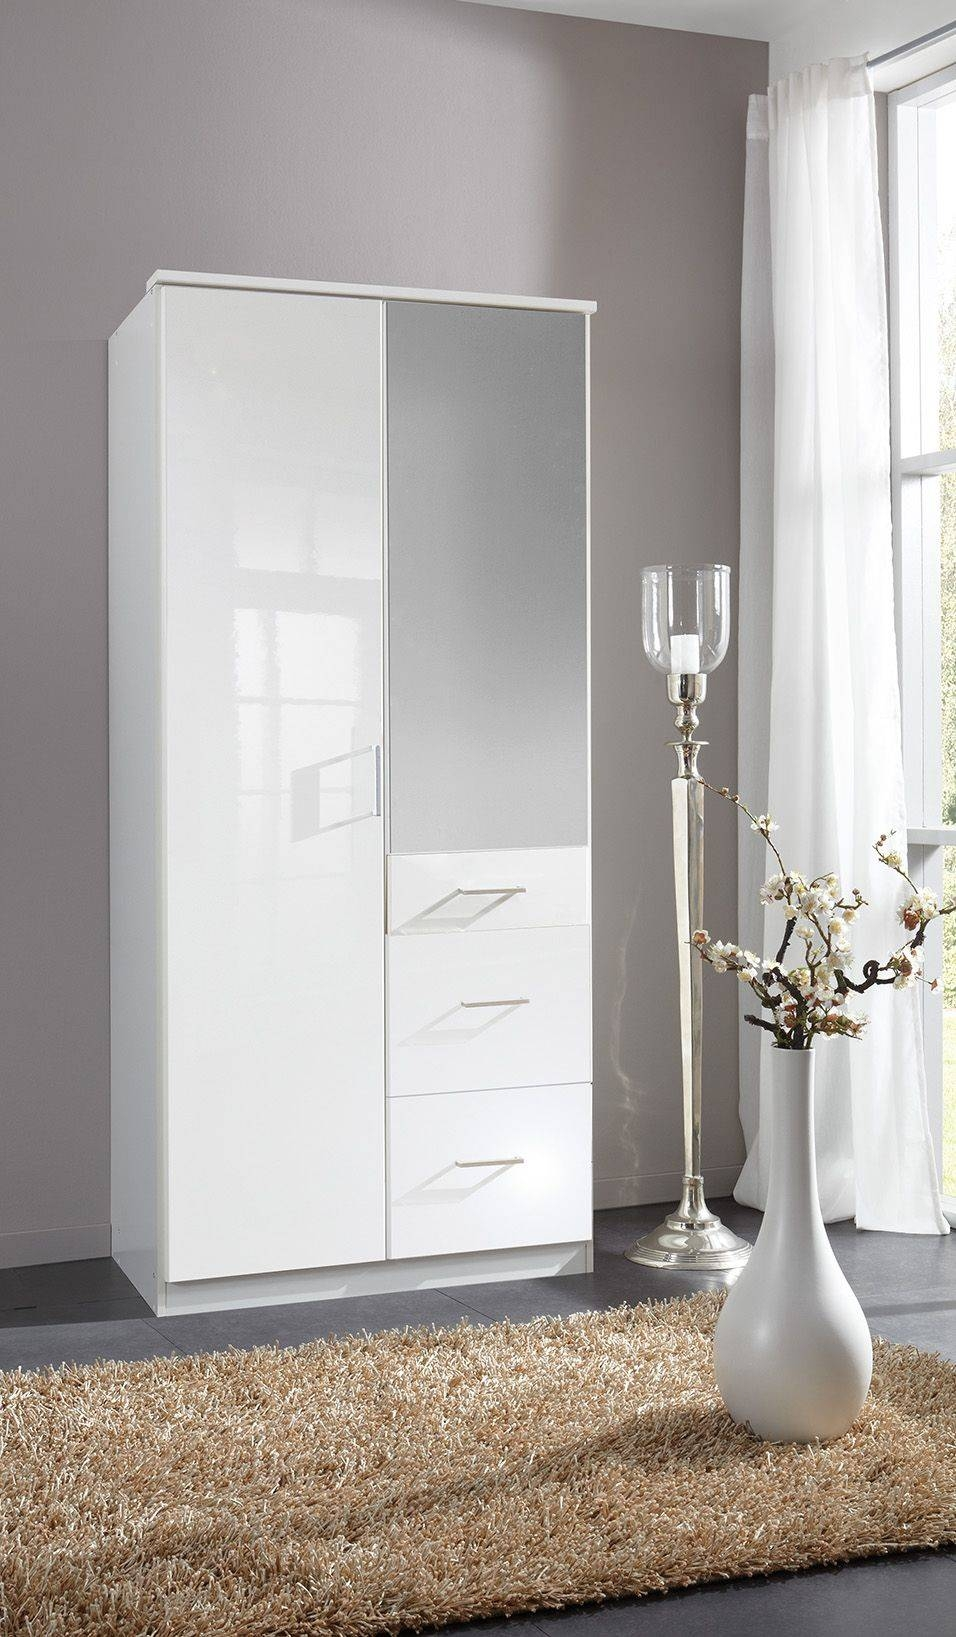 Clack High Gloss White Double Mirrored Wardrobe intended for High Gloss White Wardrobes (Image 2 of 15)